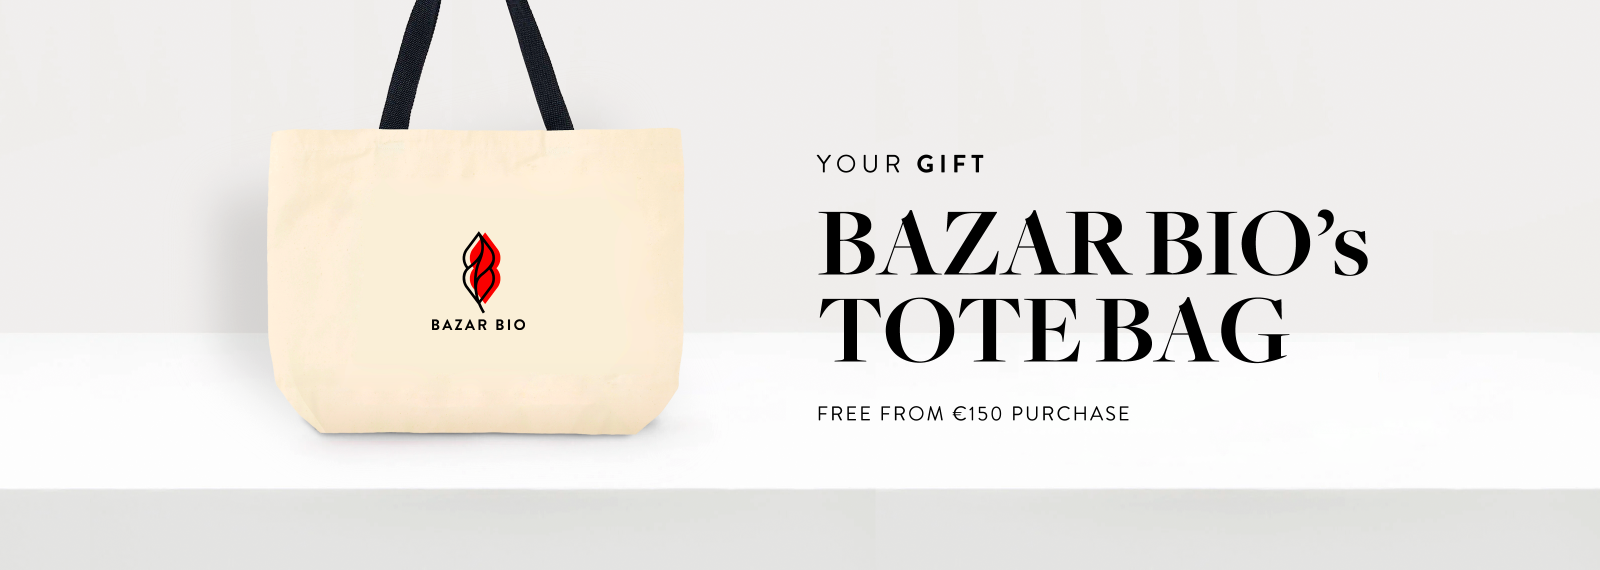 FREE BAZAR BIO'S TOTE BAG FROM 150€ PURCHASE